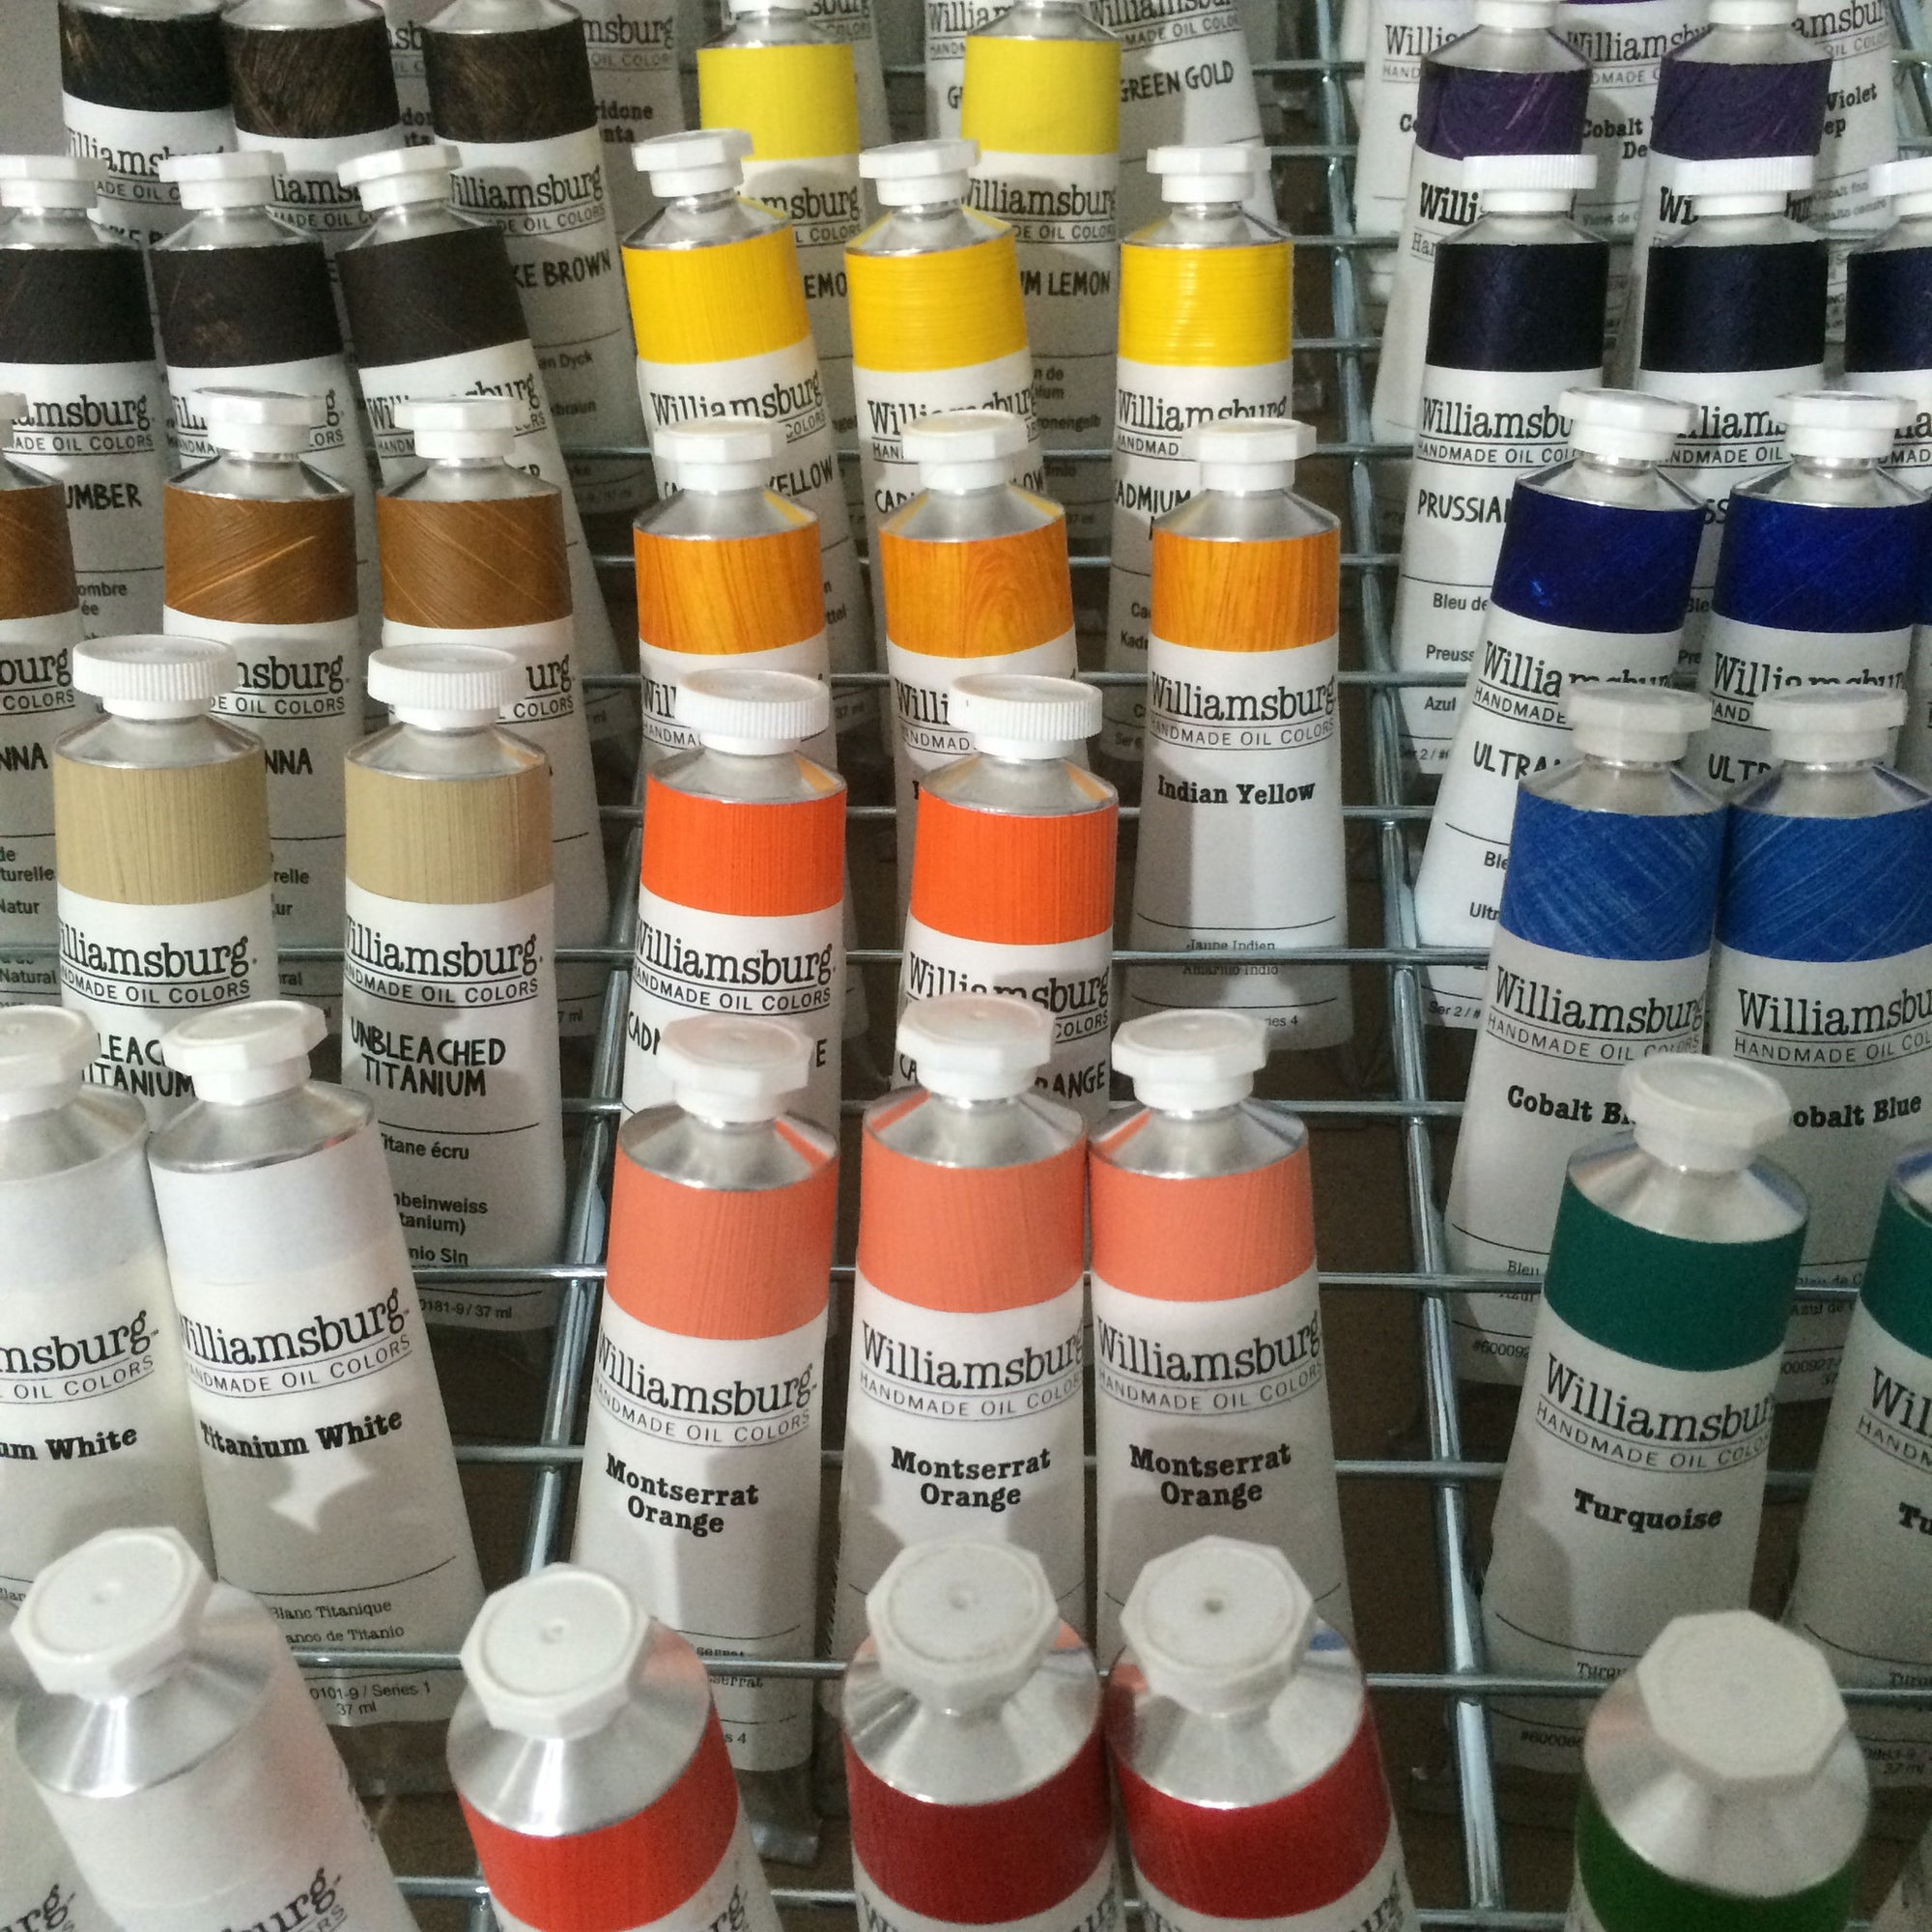 Williamsburg Handmade Oil Paints - 37ml tubes